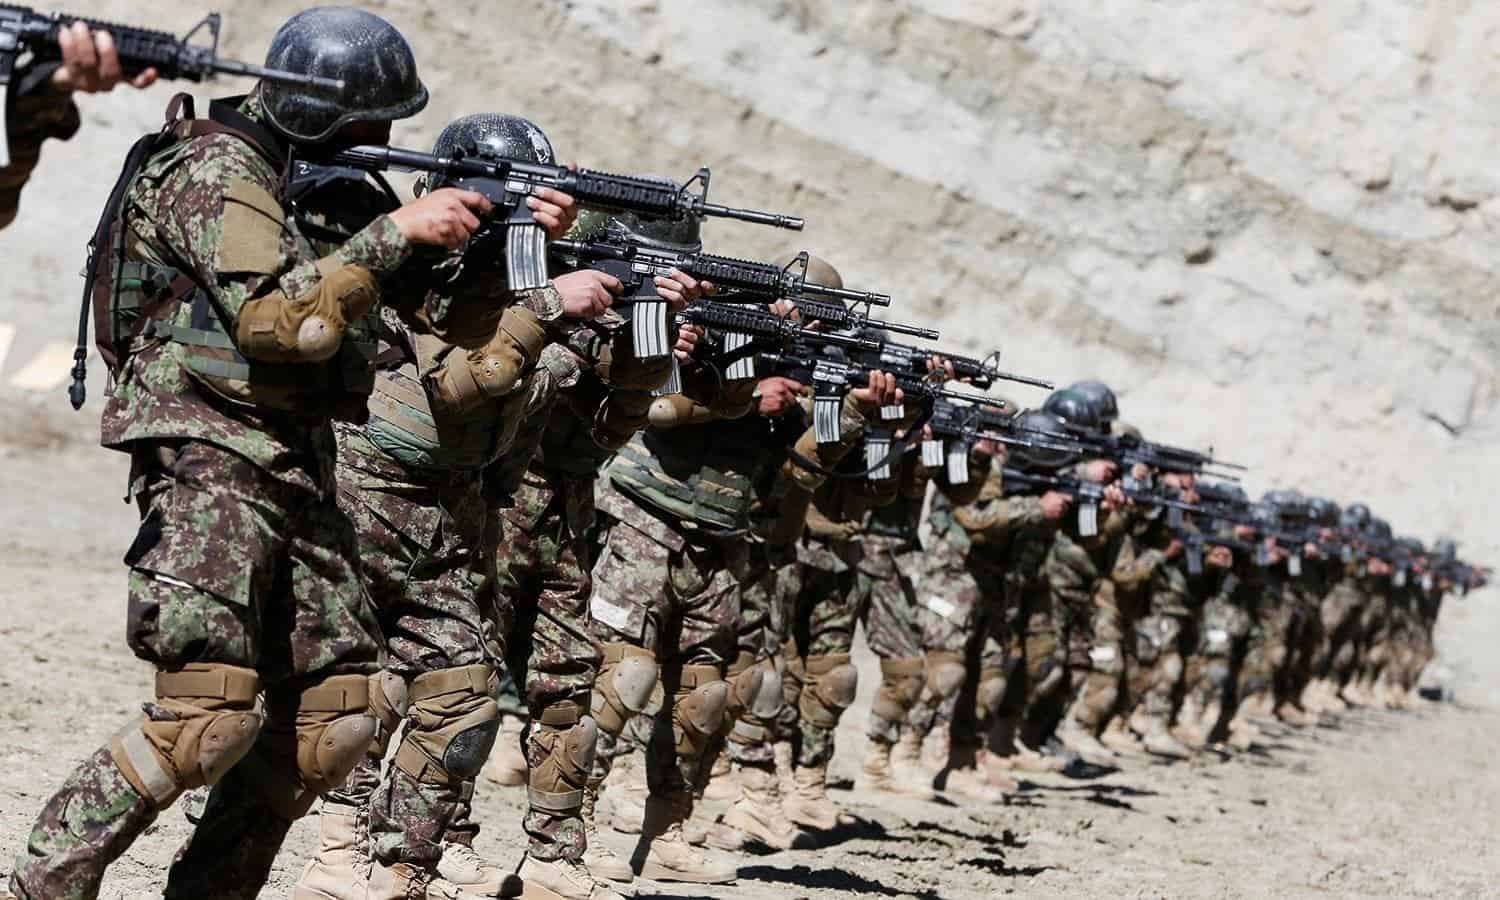 US has closed 10 bases in Afghanistan: Washington Post 4